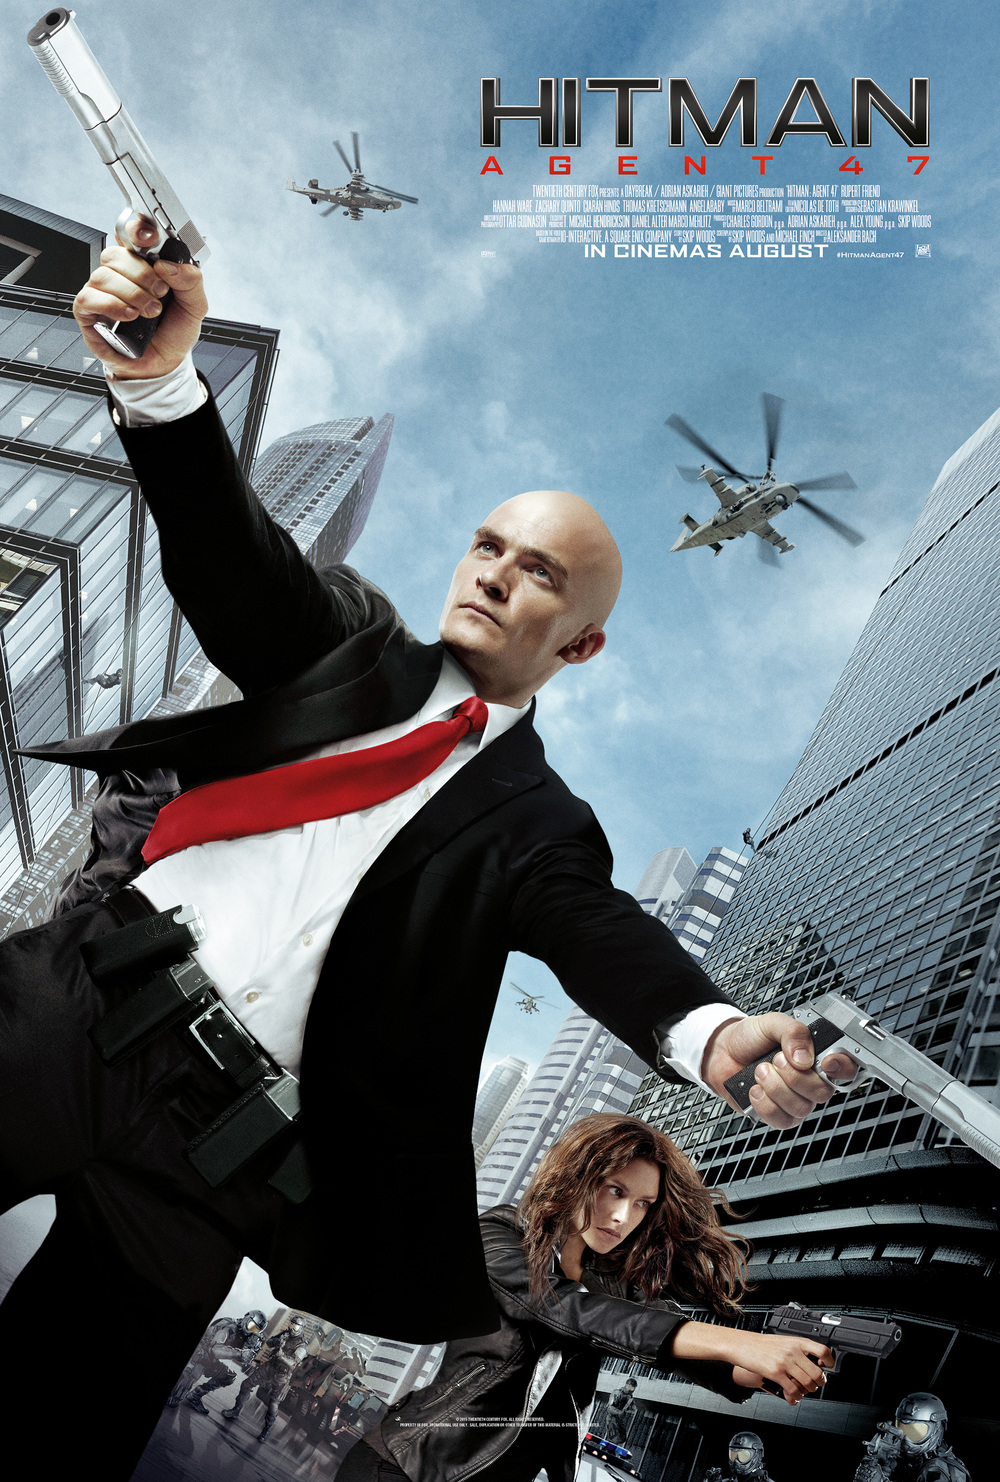 Above:  Hitman: Agent 47 (2015) poster.  Below:  Hitman (2007) poster.